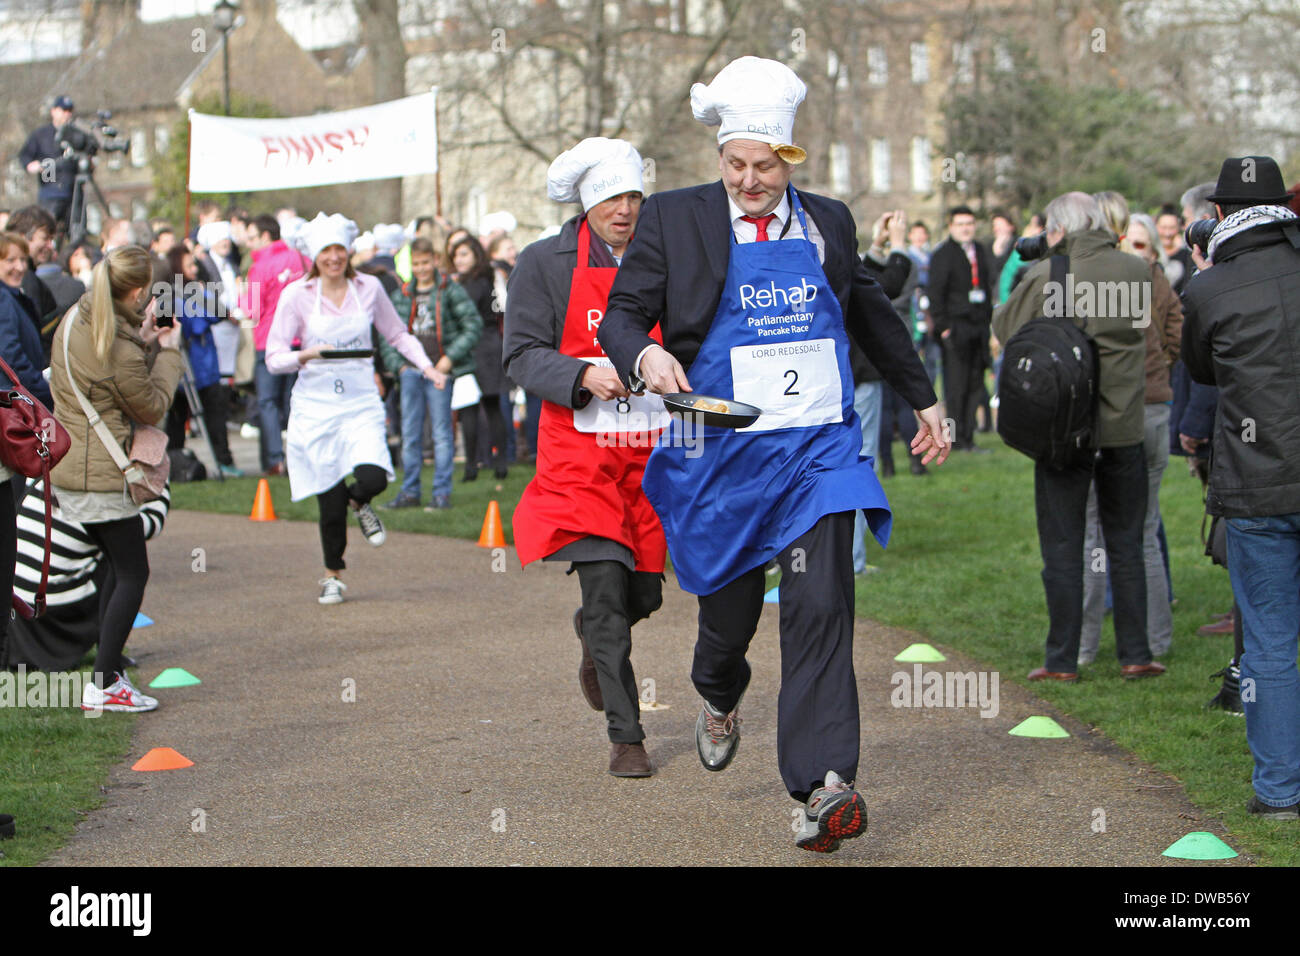 London,UK,4th March 2014,Fierce competition in the Parliamentary Pancake Rac Credit: Keith Larby/Alamy Live News - Stock Image